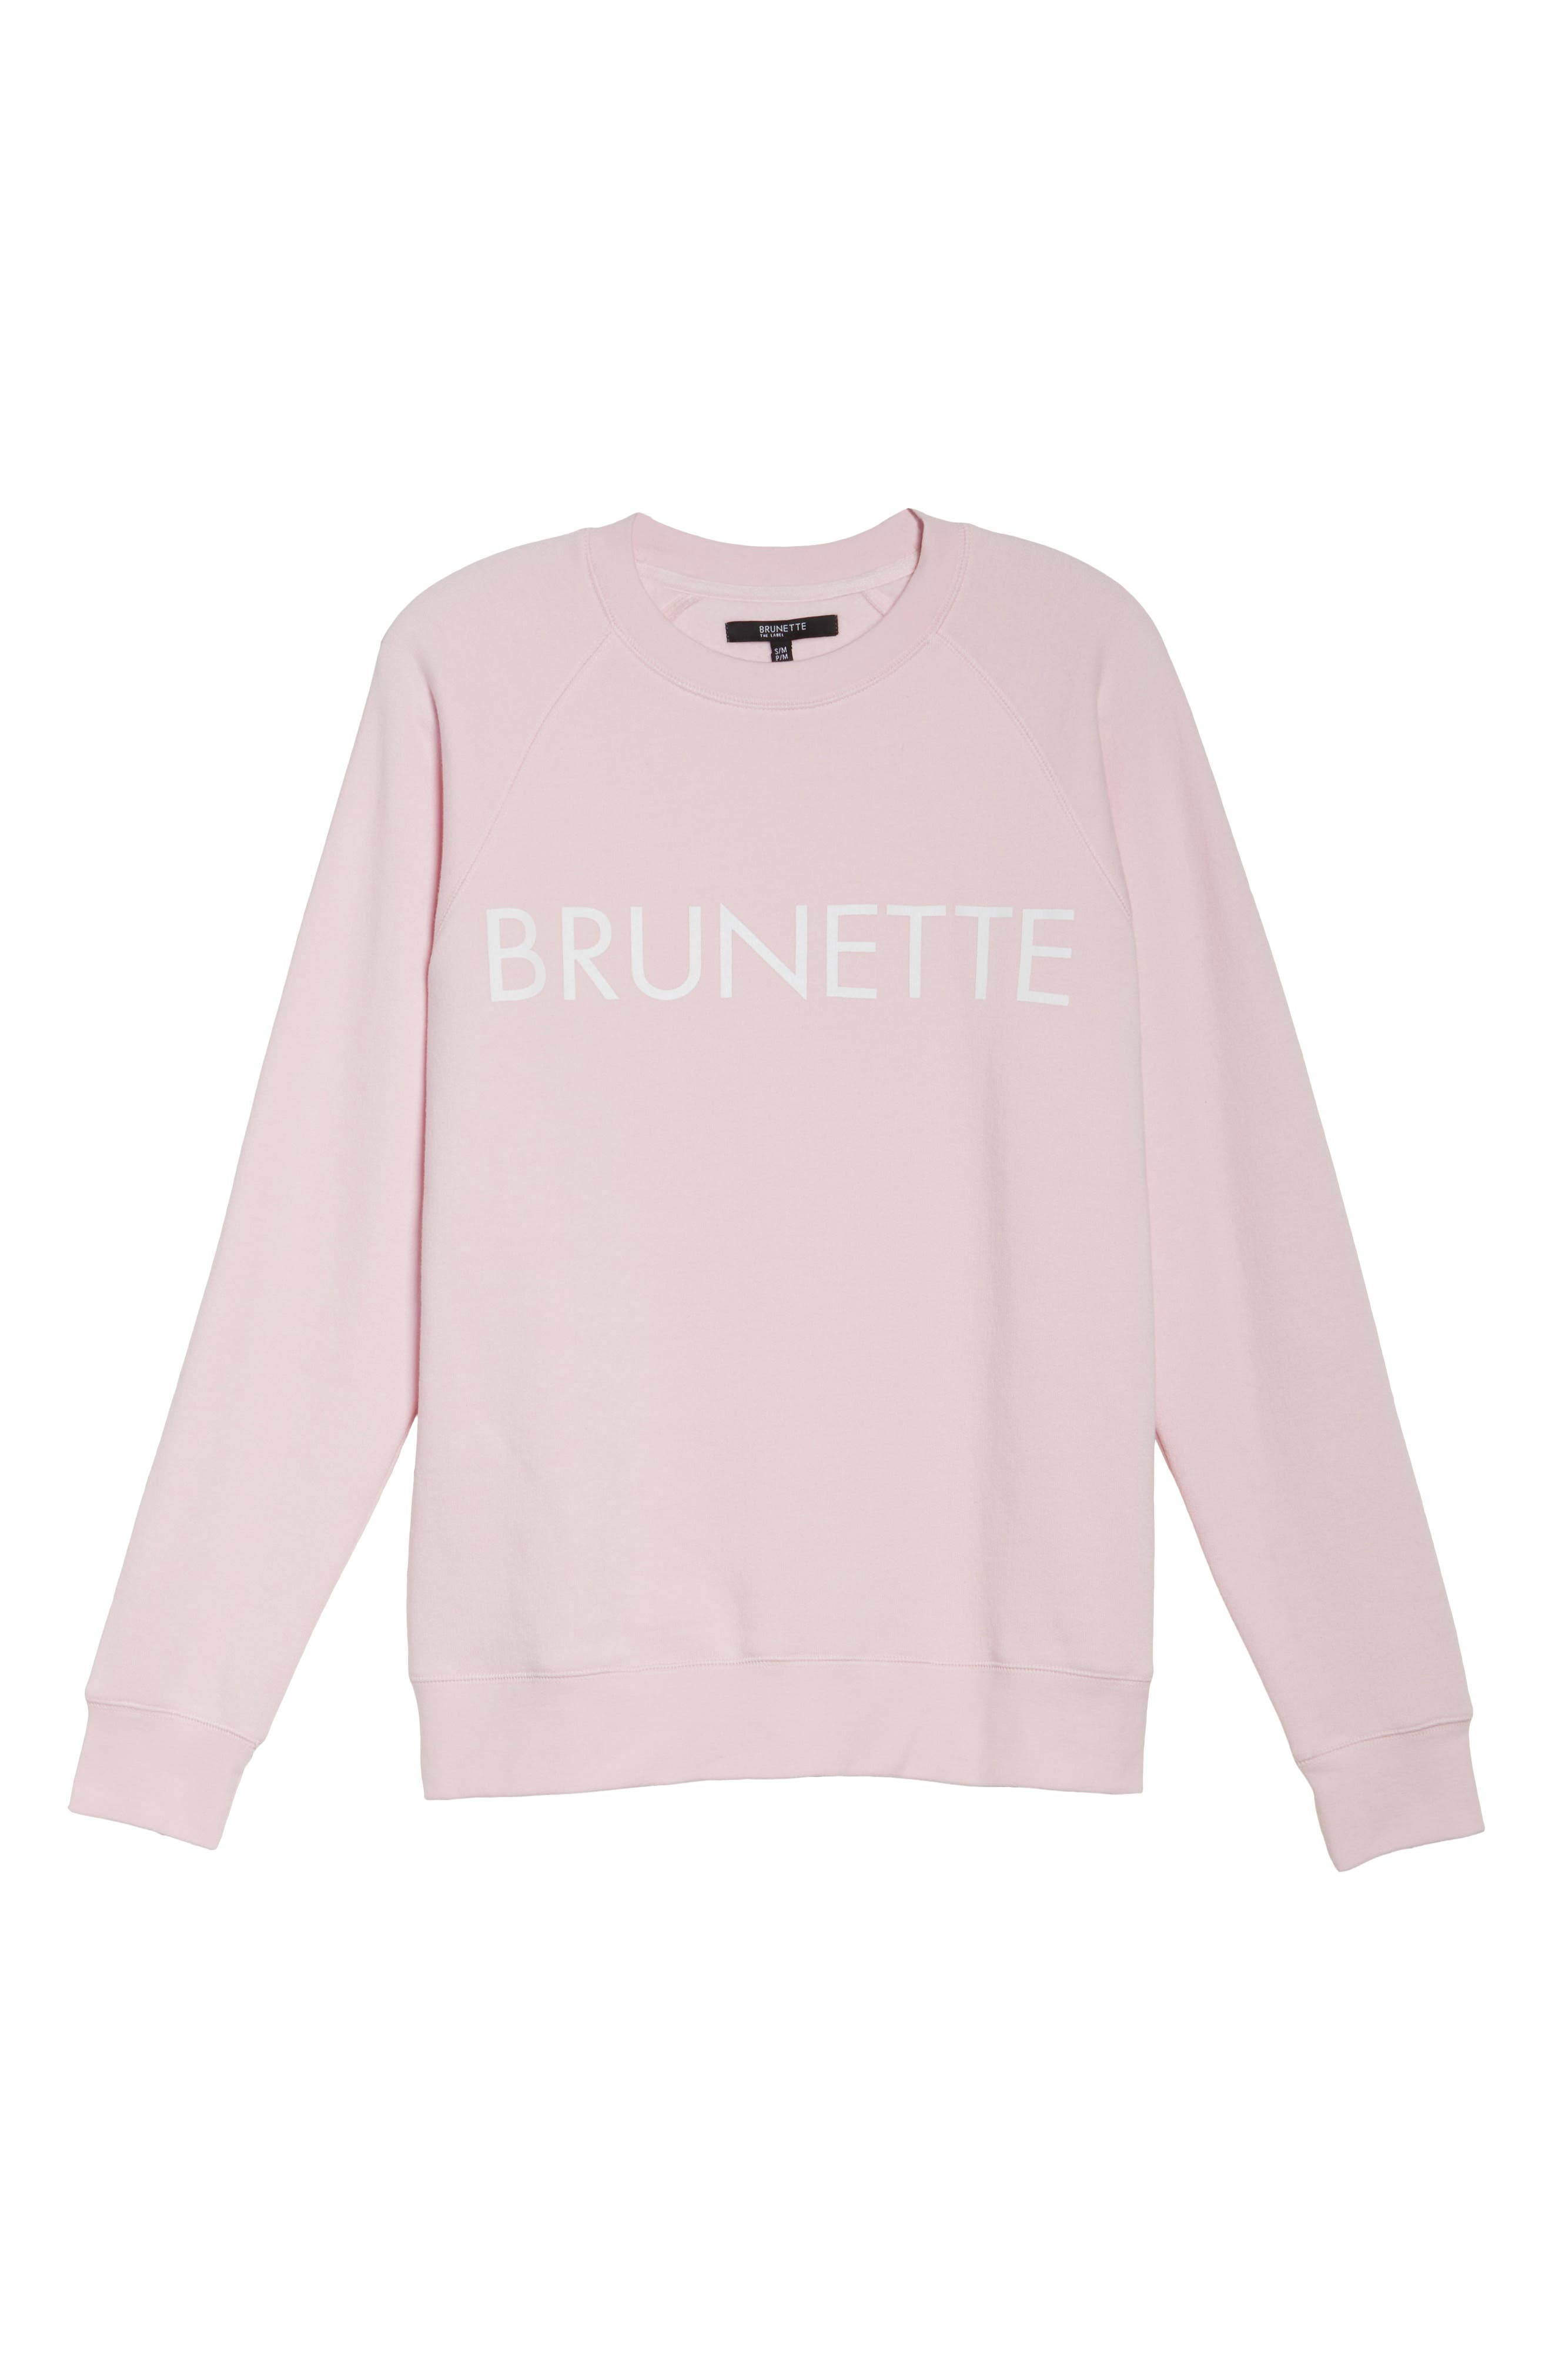 Brunette Crewneck Sweatshirt,                             Alternate thumbnail 6, color,                             650